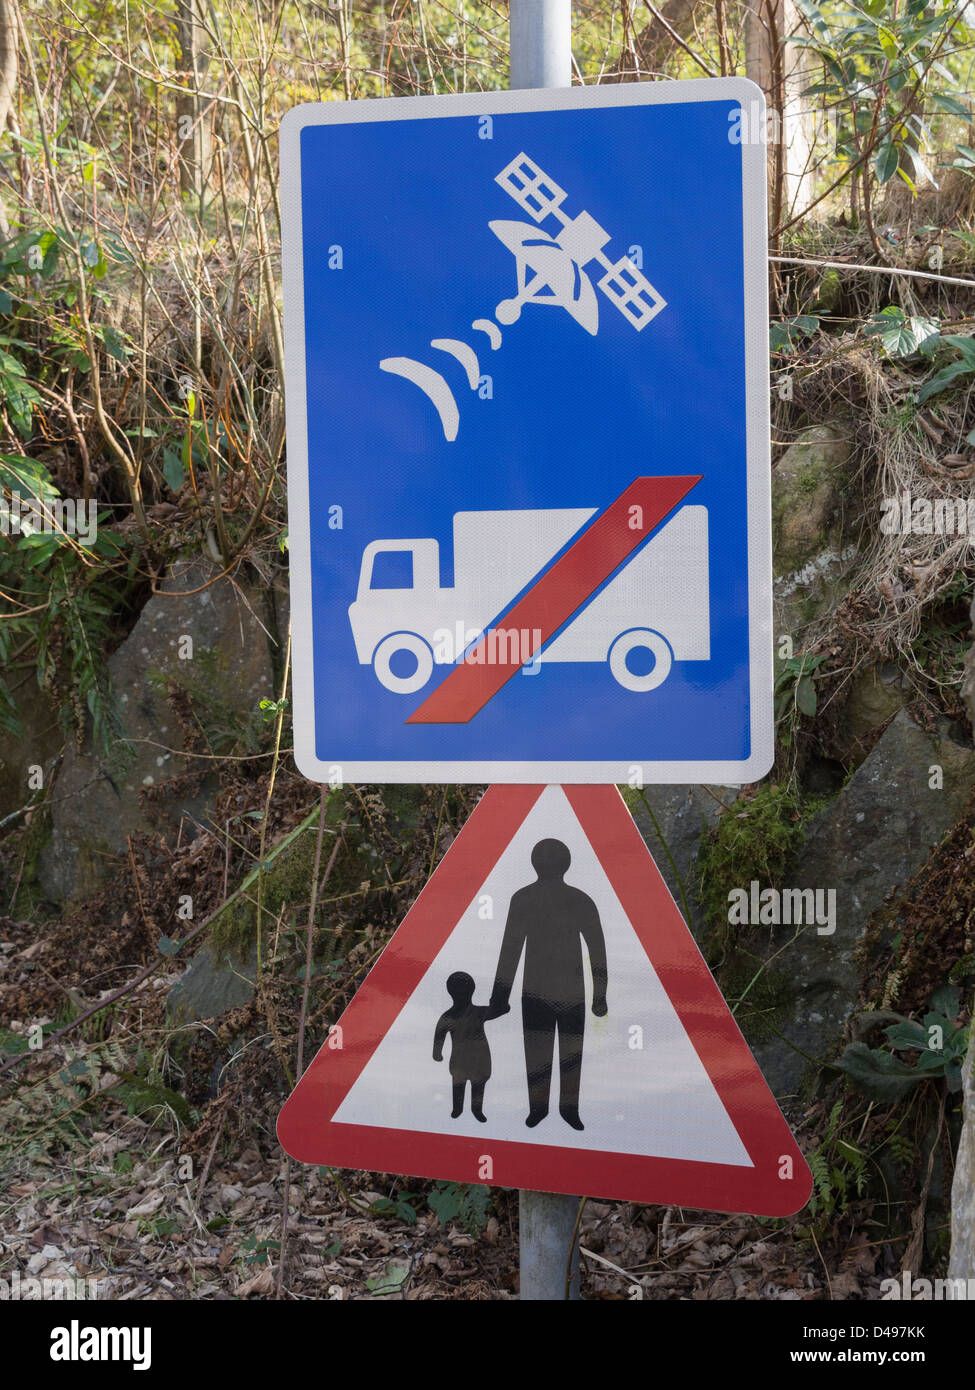 Road sign warning lorry drivers not to use satellite navigation on narrow country lane unsuitable for heavy goods - Stock Image